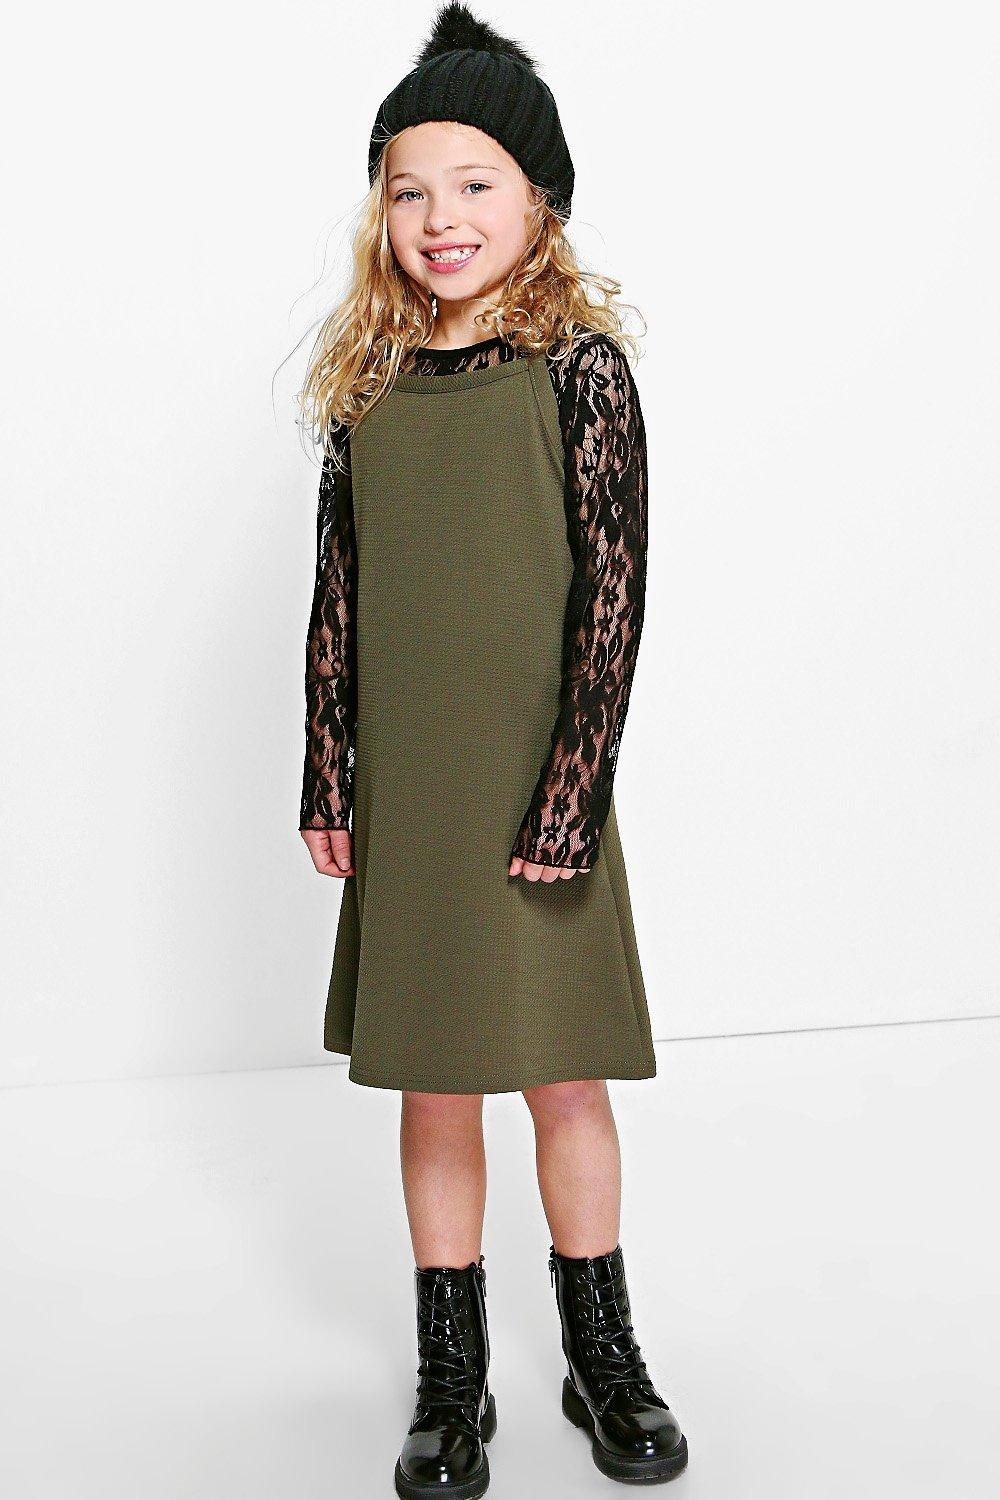 Girls Lace Top And Textured Dress Set